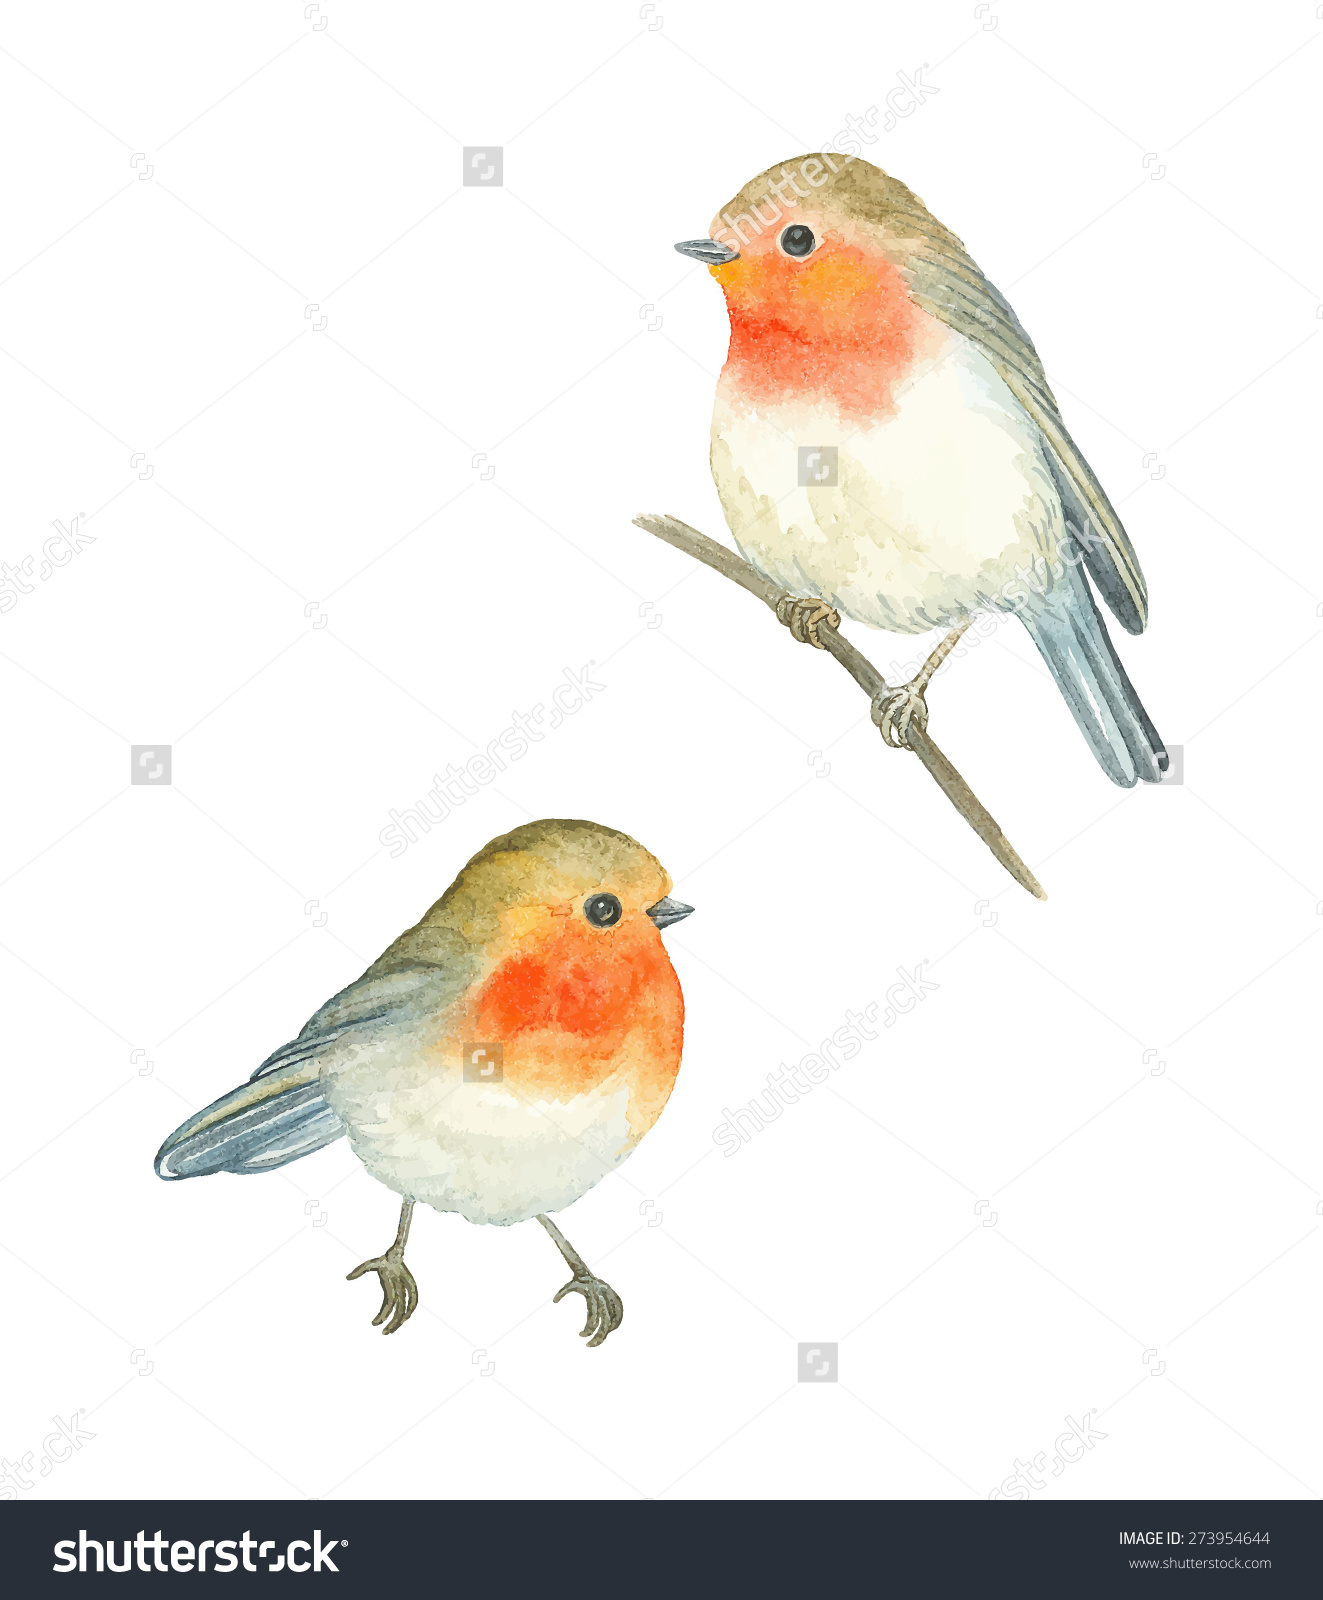 Watercolor Birds Robin Erithacus Rubecula Vector Stock Vector.